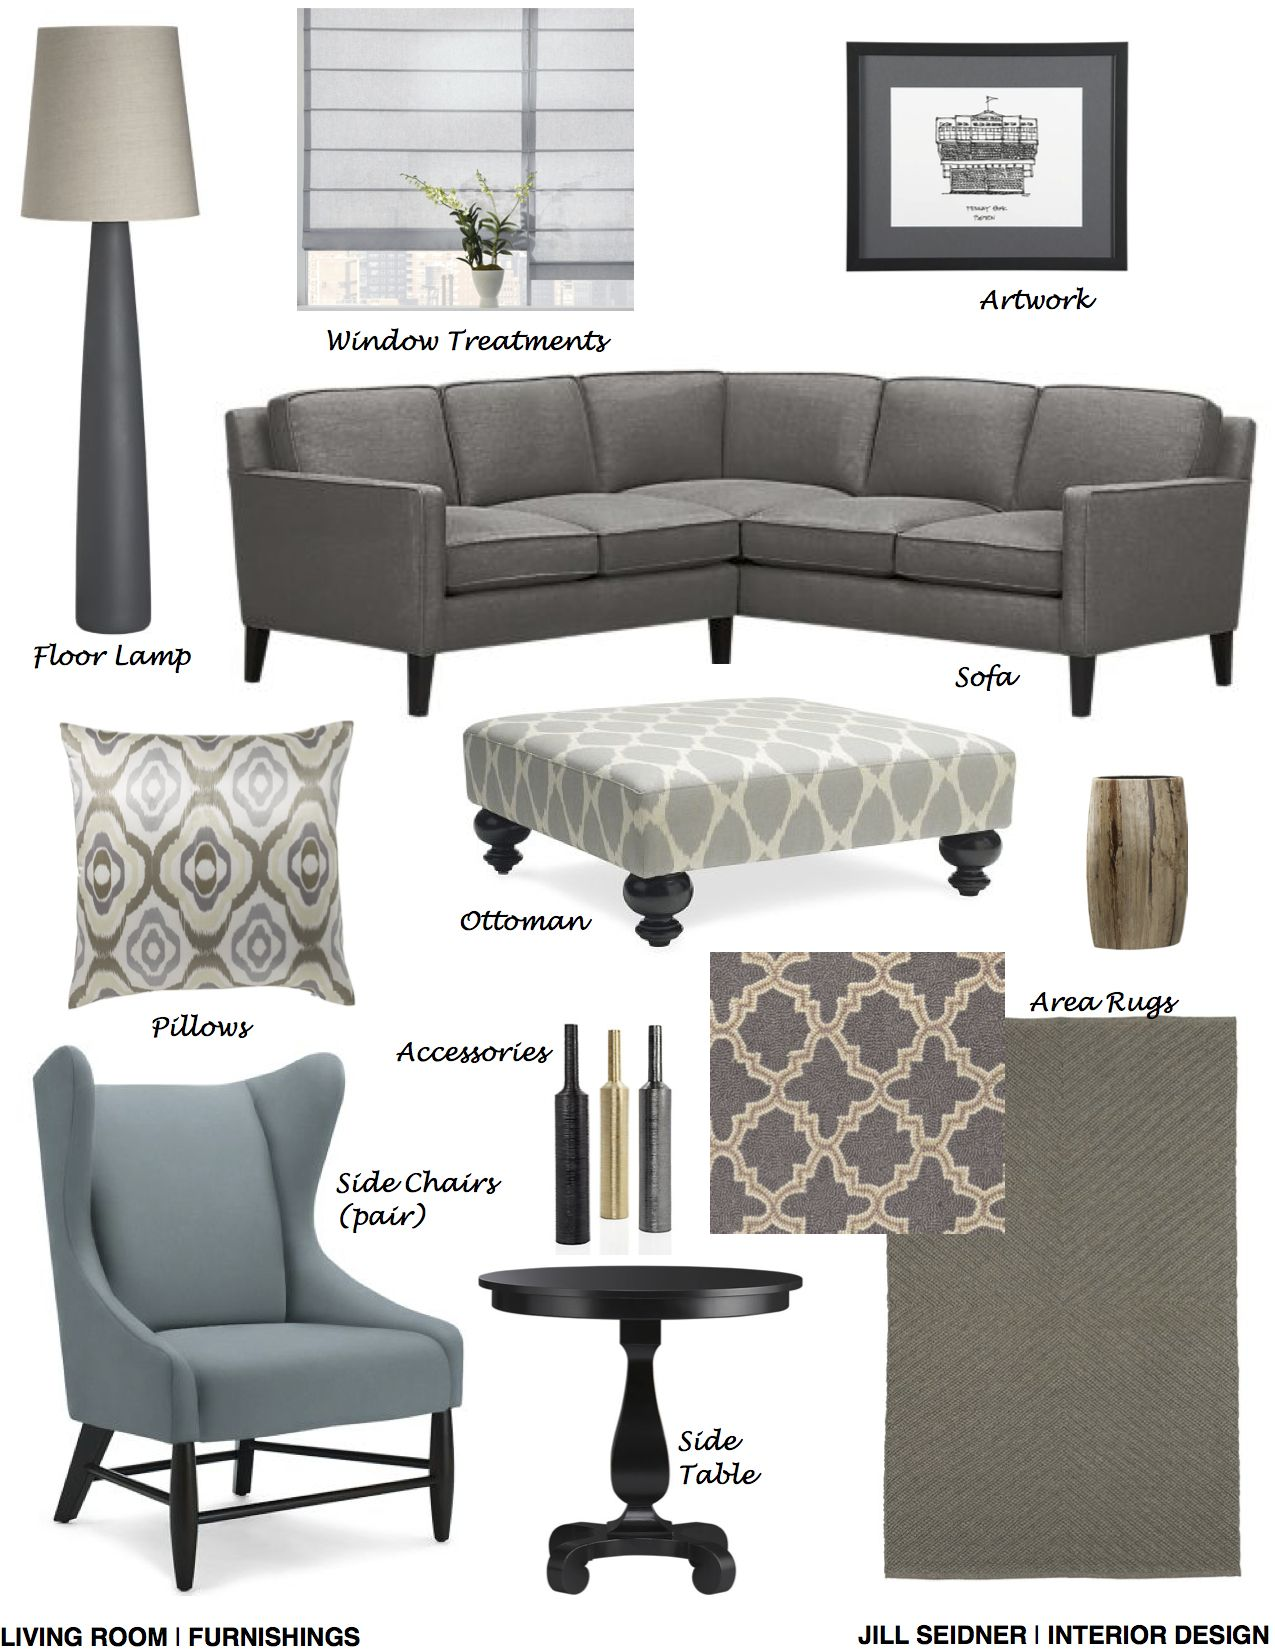 Cambridge, MA Online Design Project Living Room Furnishings Concept Board